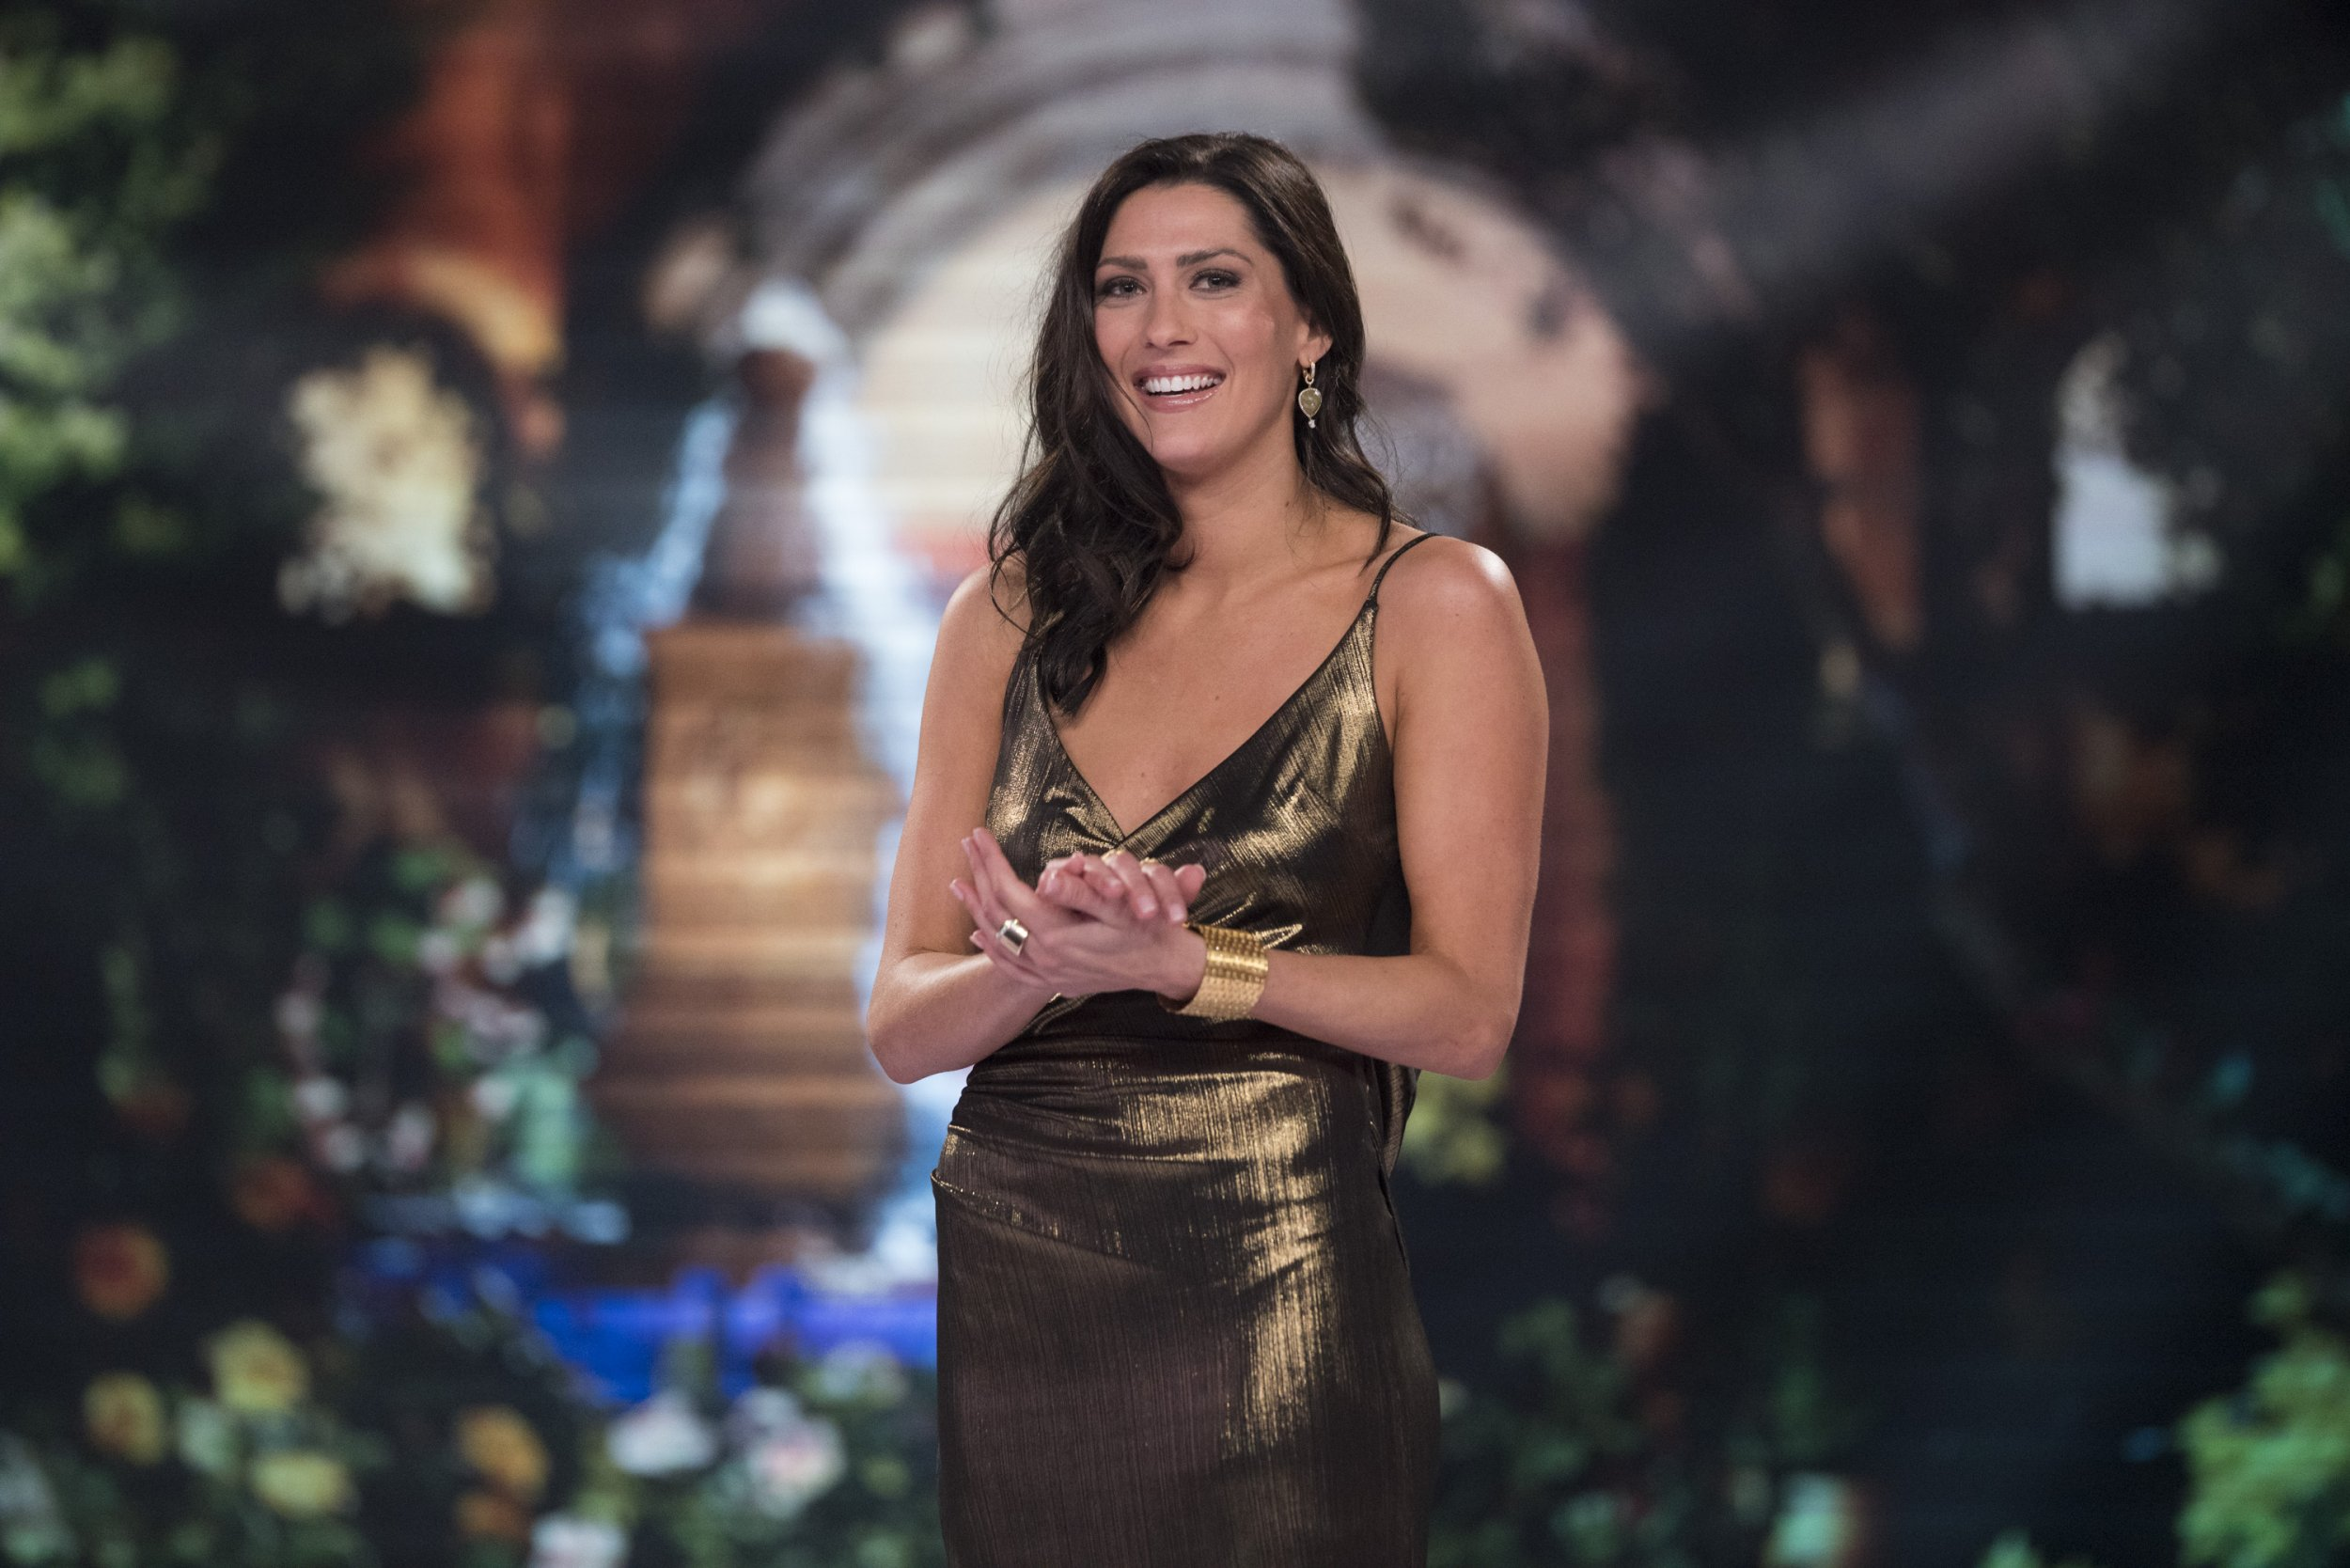 Becca Kufrin named new 'Bachelorette'